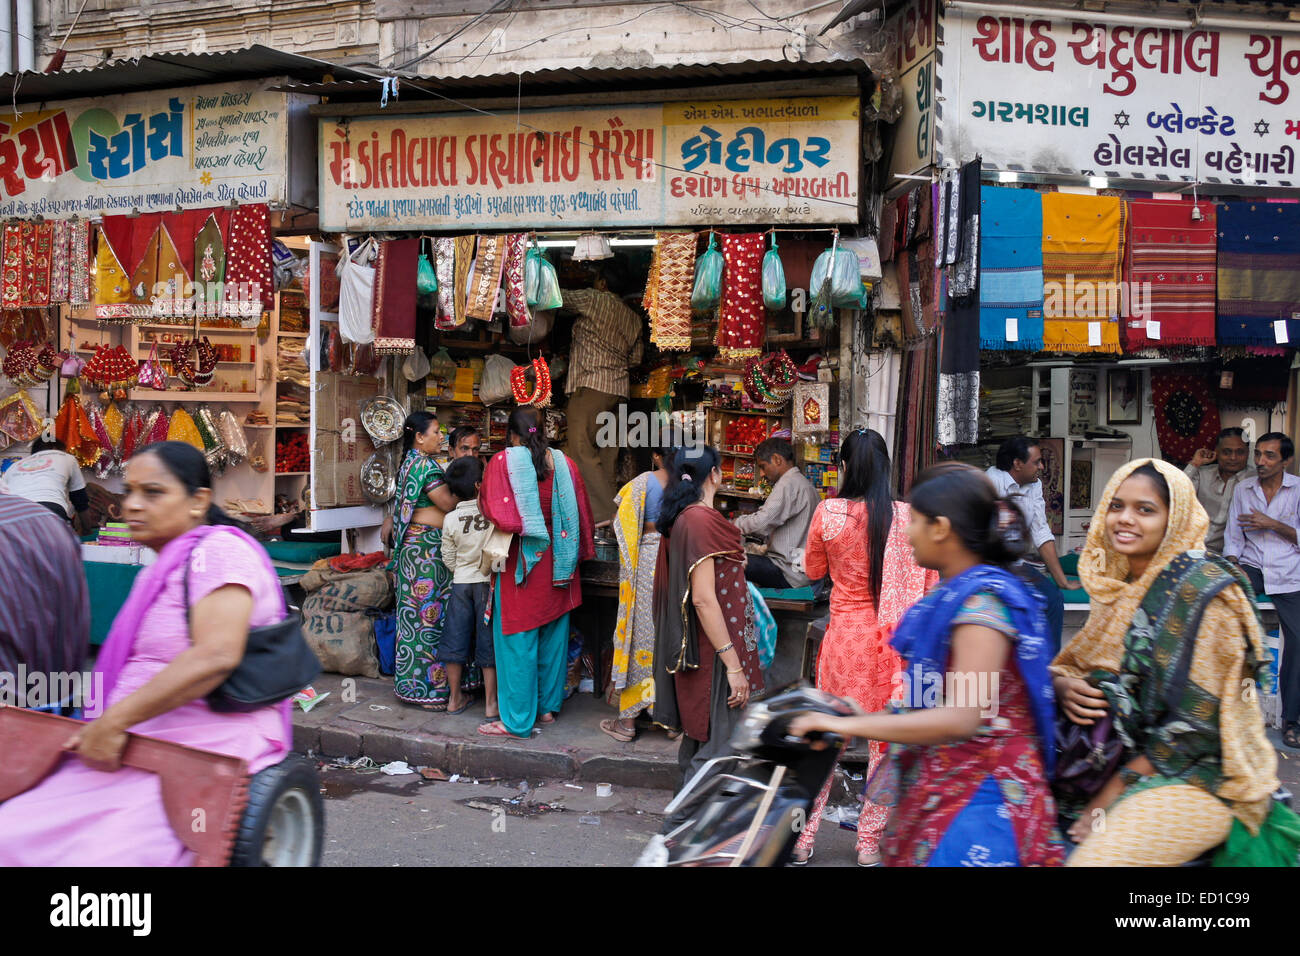 Crowded market area in Old Ahmedabad, Gujarat, India - Stock Image